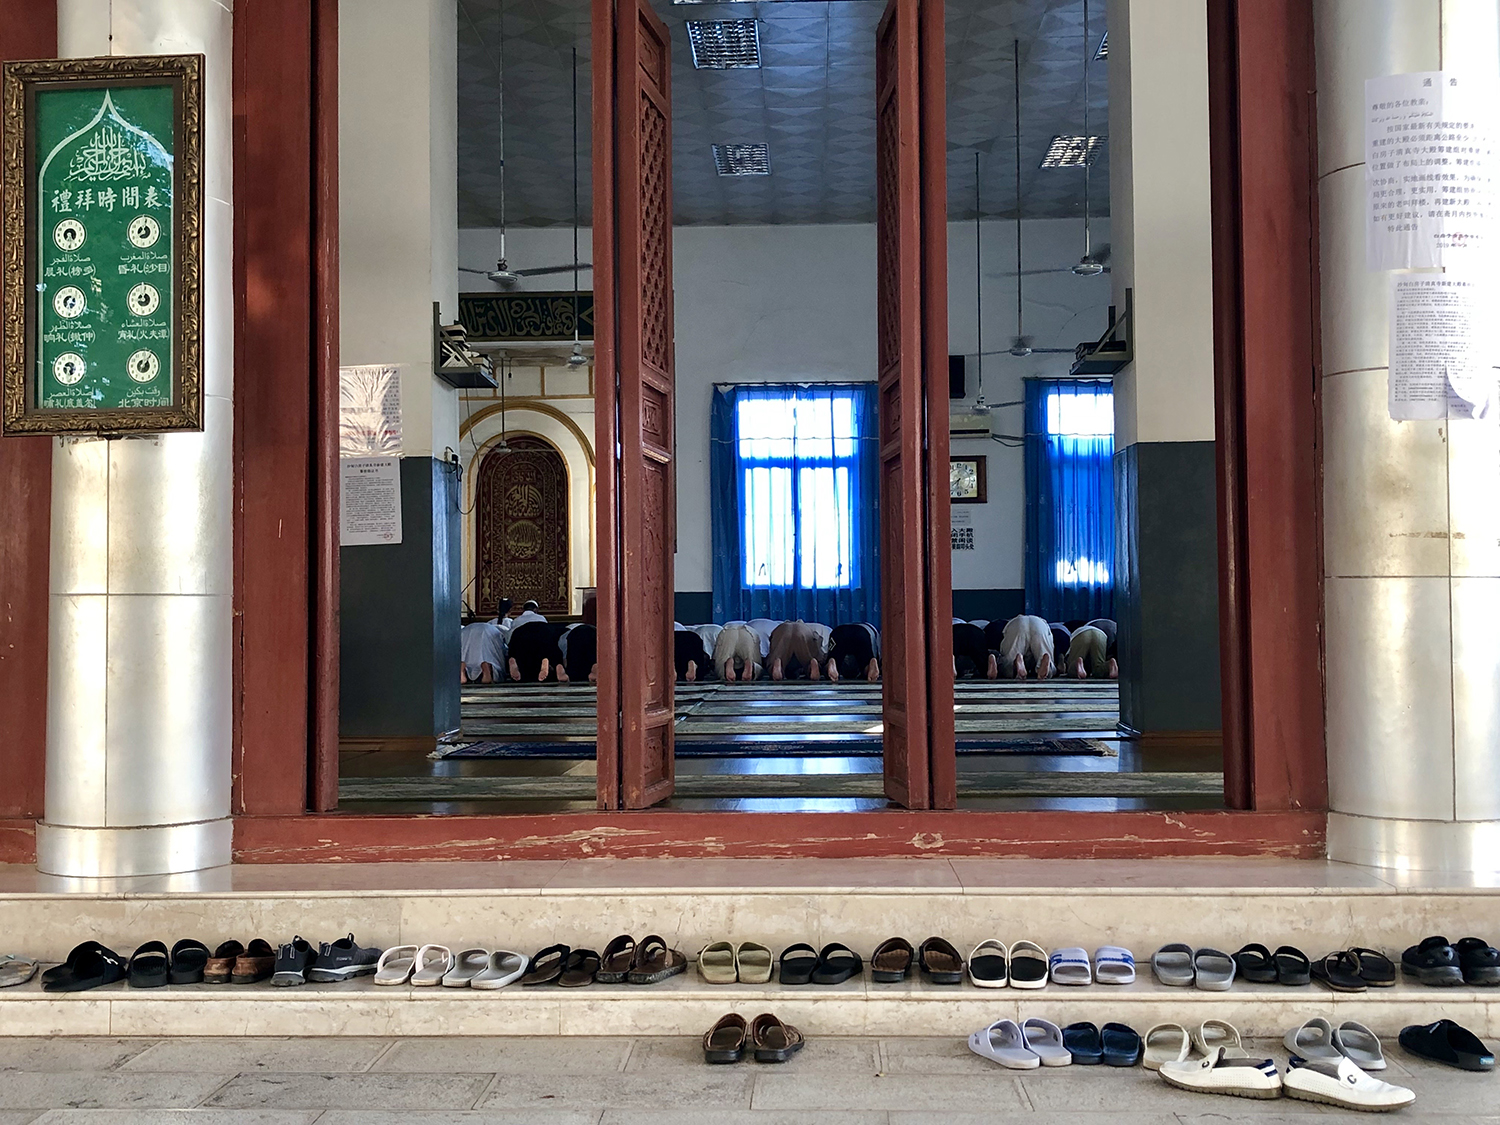 Worshippers gather at a mosque in Shadian, China.